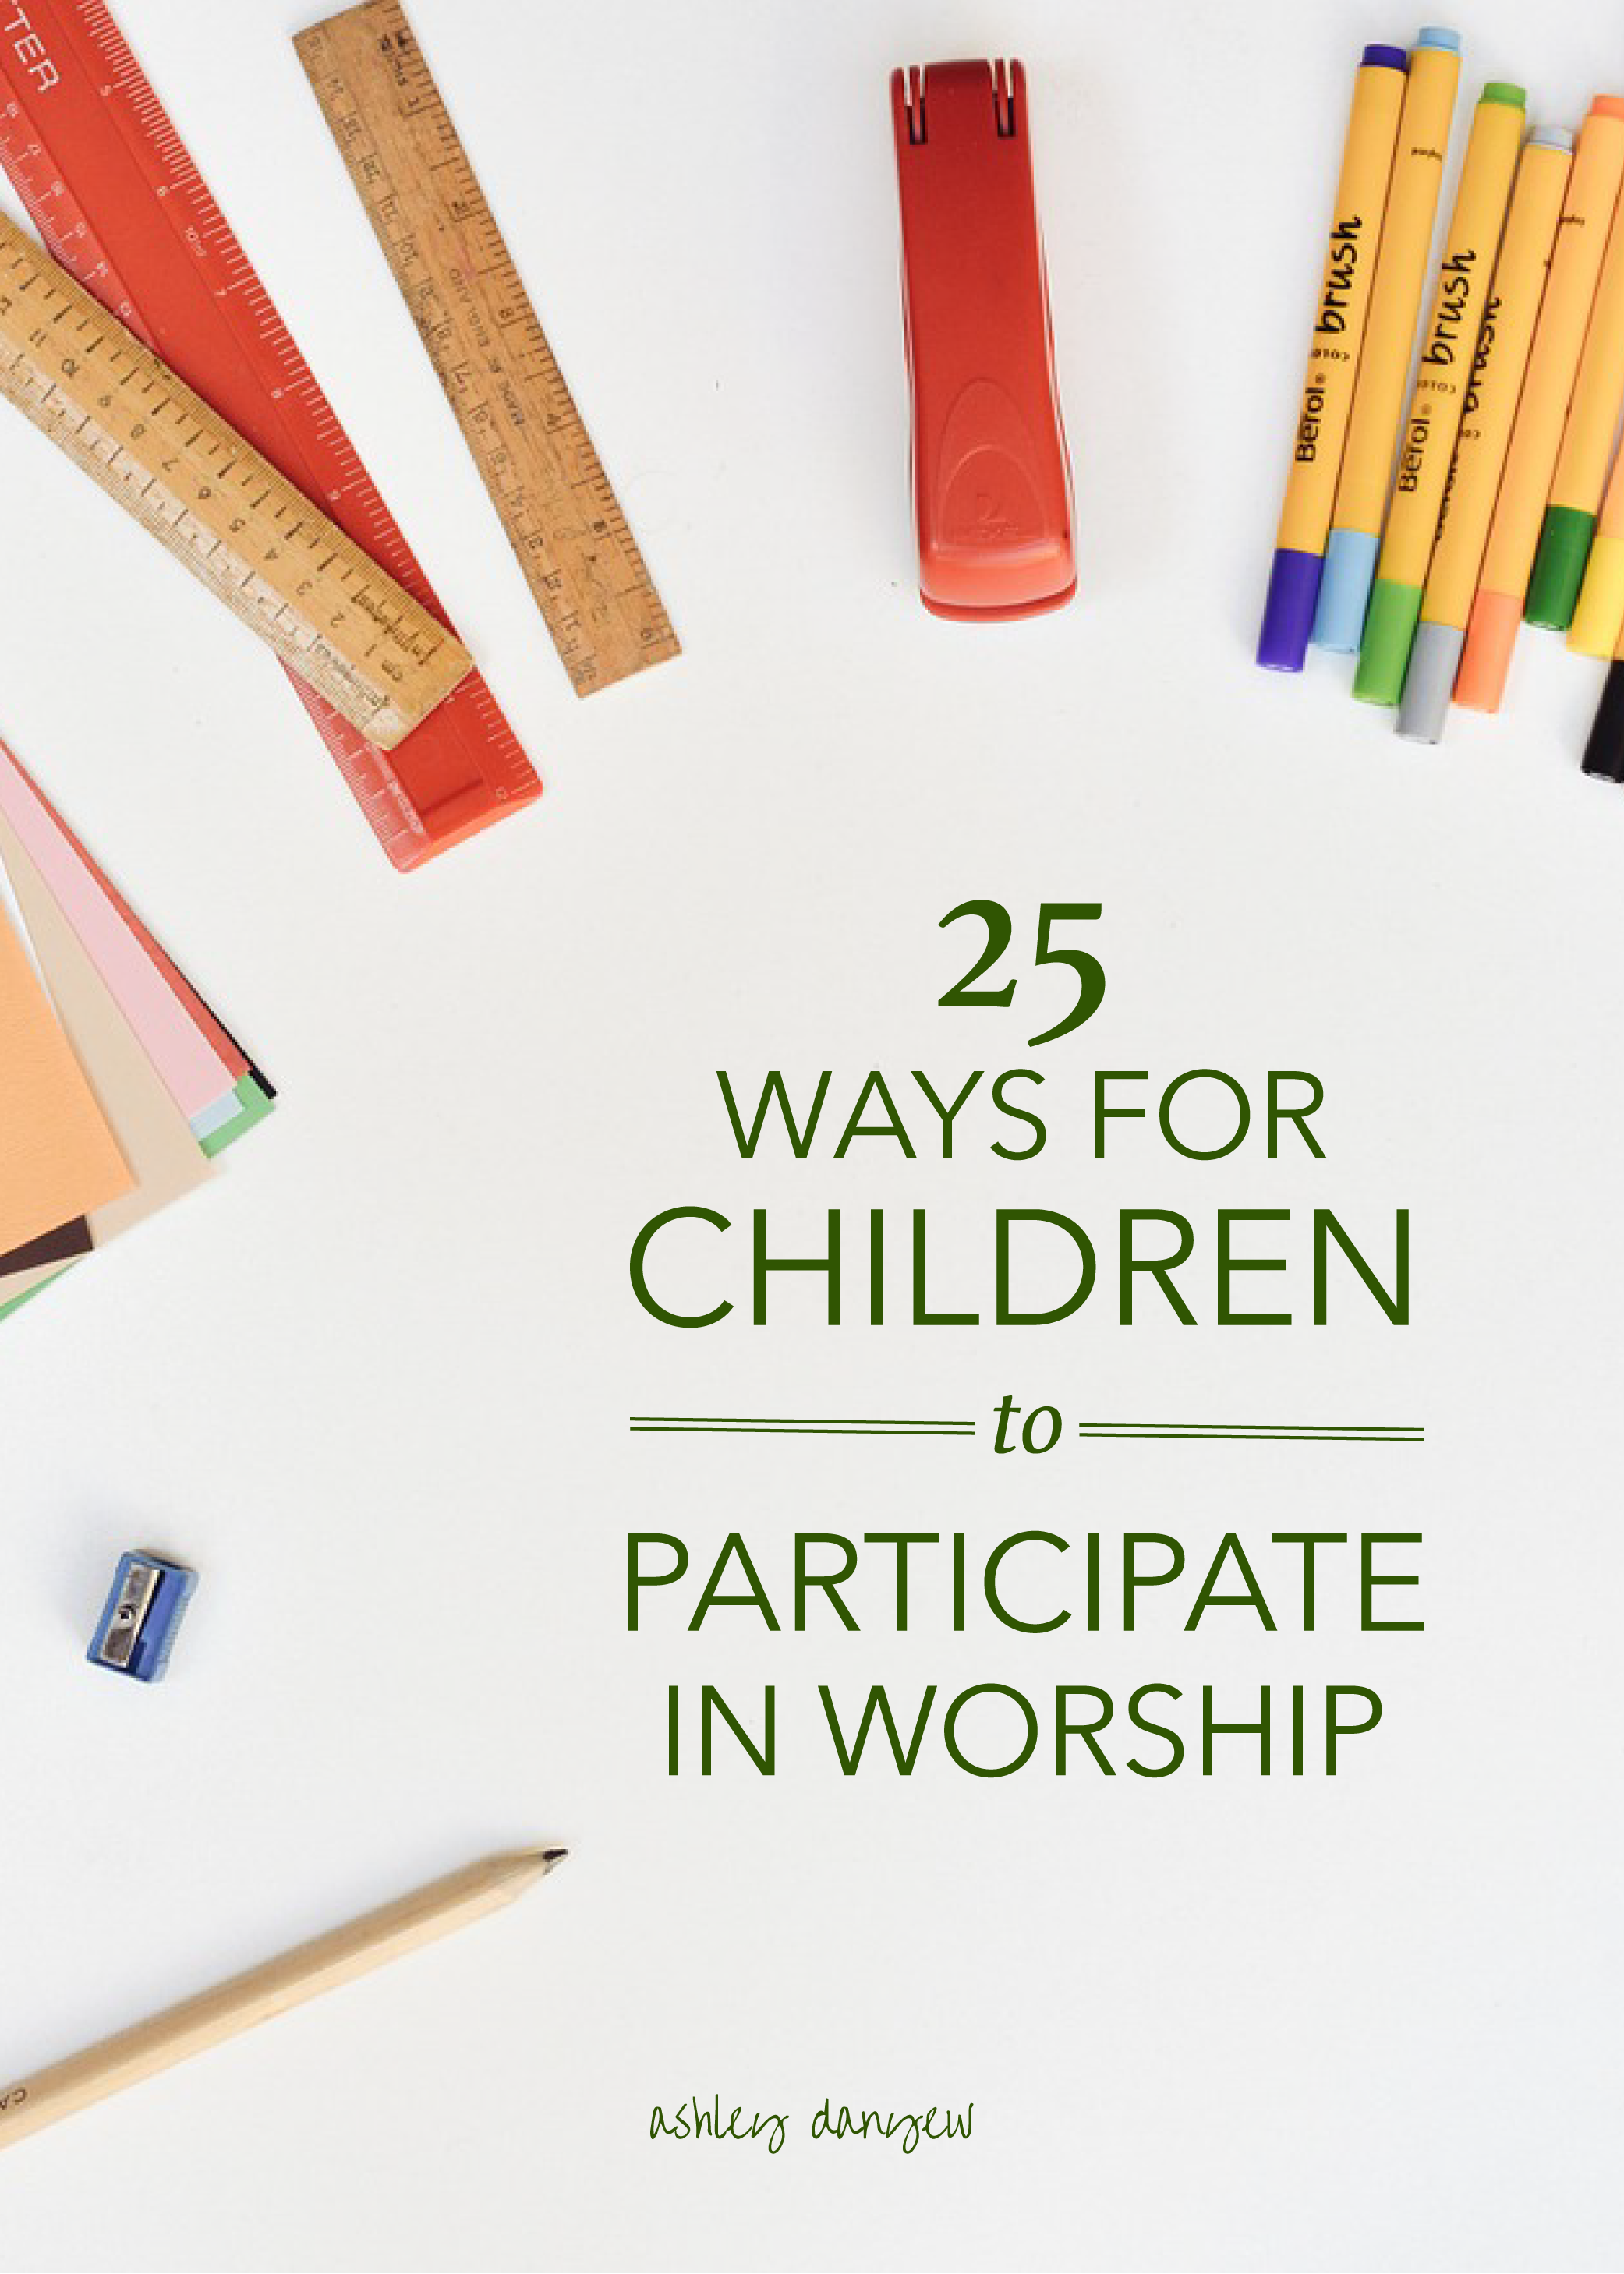 25 Ways for Children to Participate in Worship-01.png